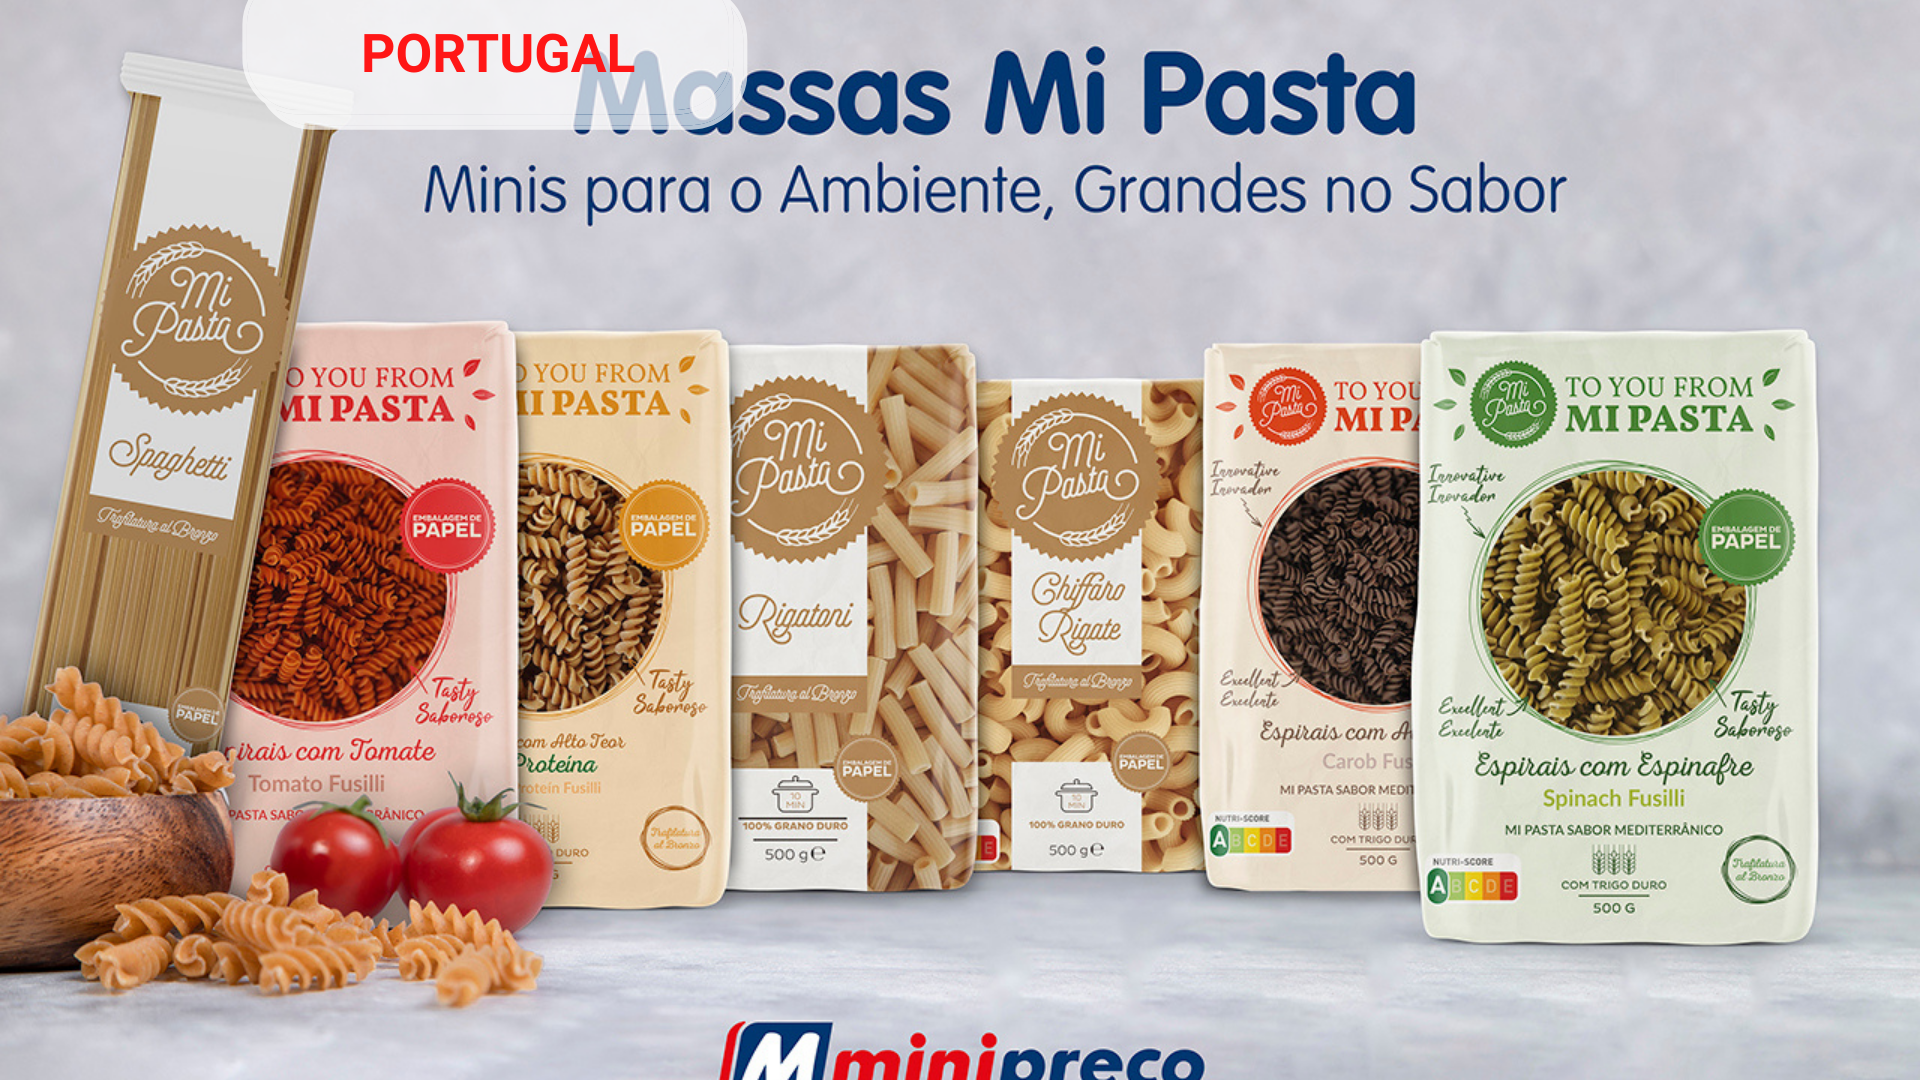 Joint launch of the brand Mi Pasta and Minipreço